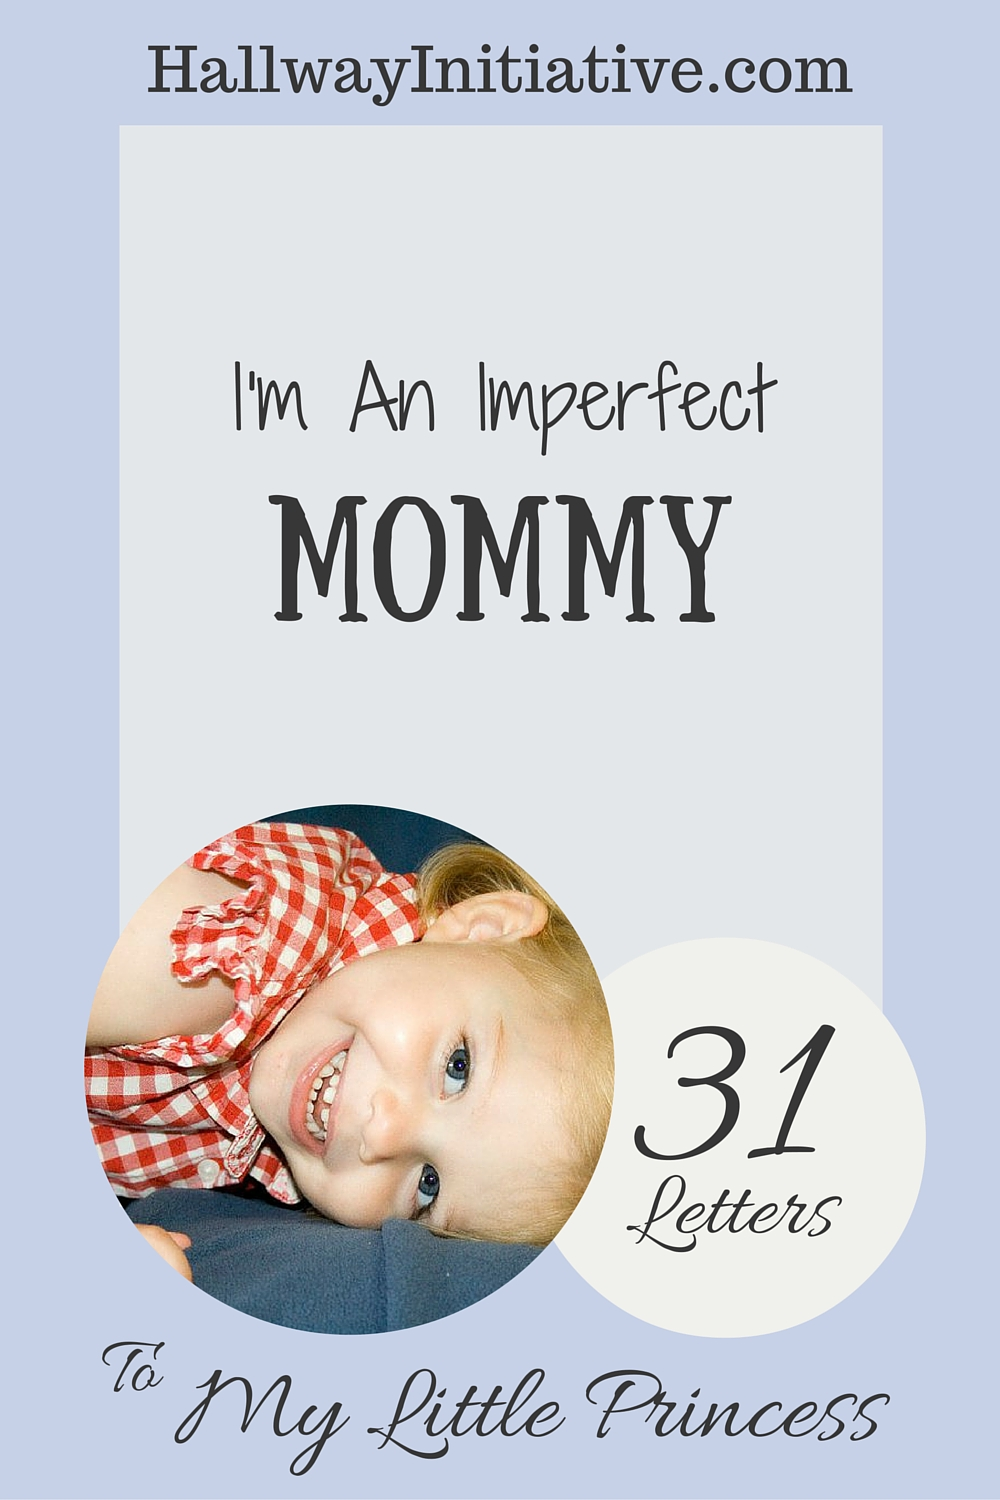 I'm an imperfect mommy